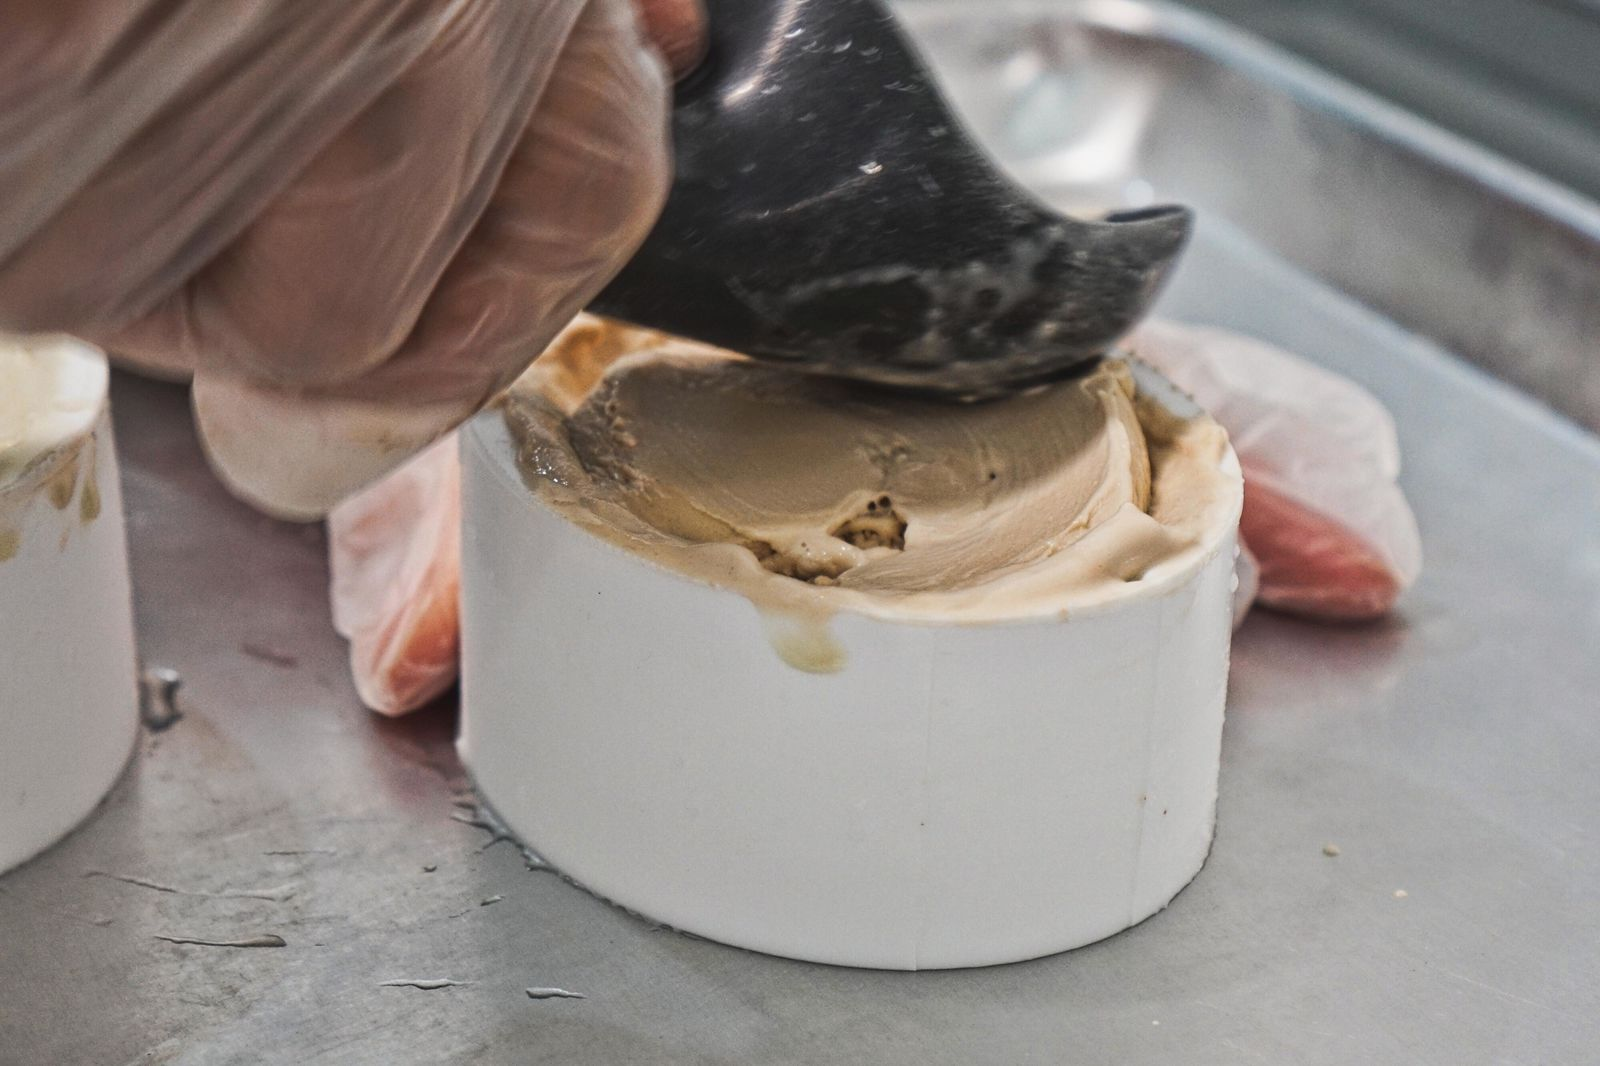 Three different flavors of ice cream are fit into dragon egg molds and frozen overnight.{ }(Photo: Emily Faber, Sinclair Broadcast Group)